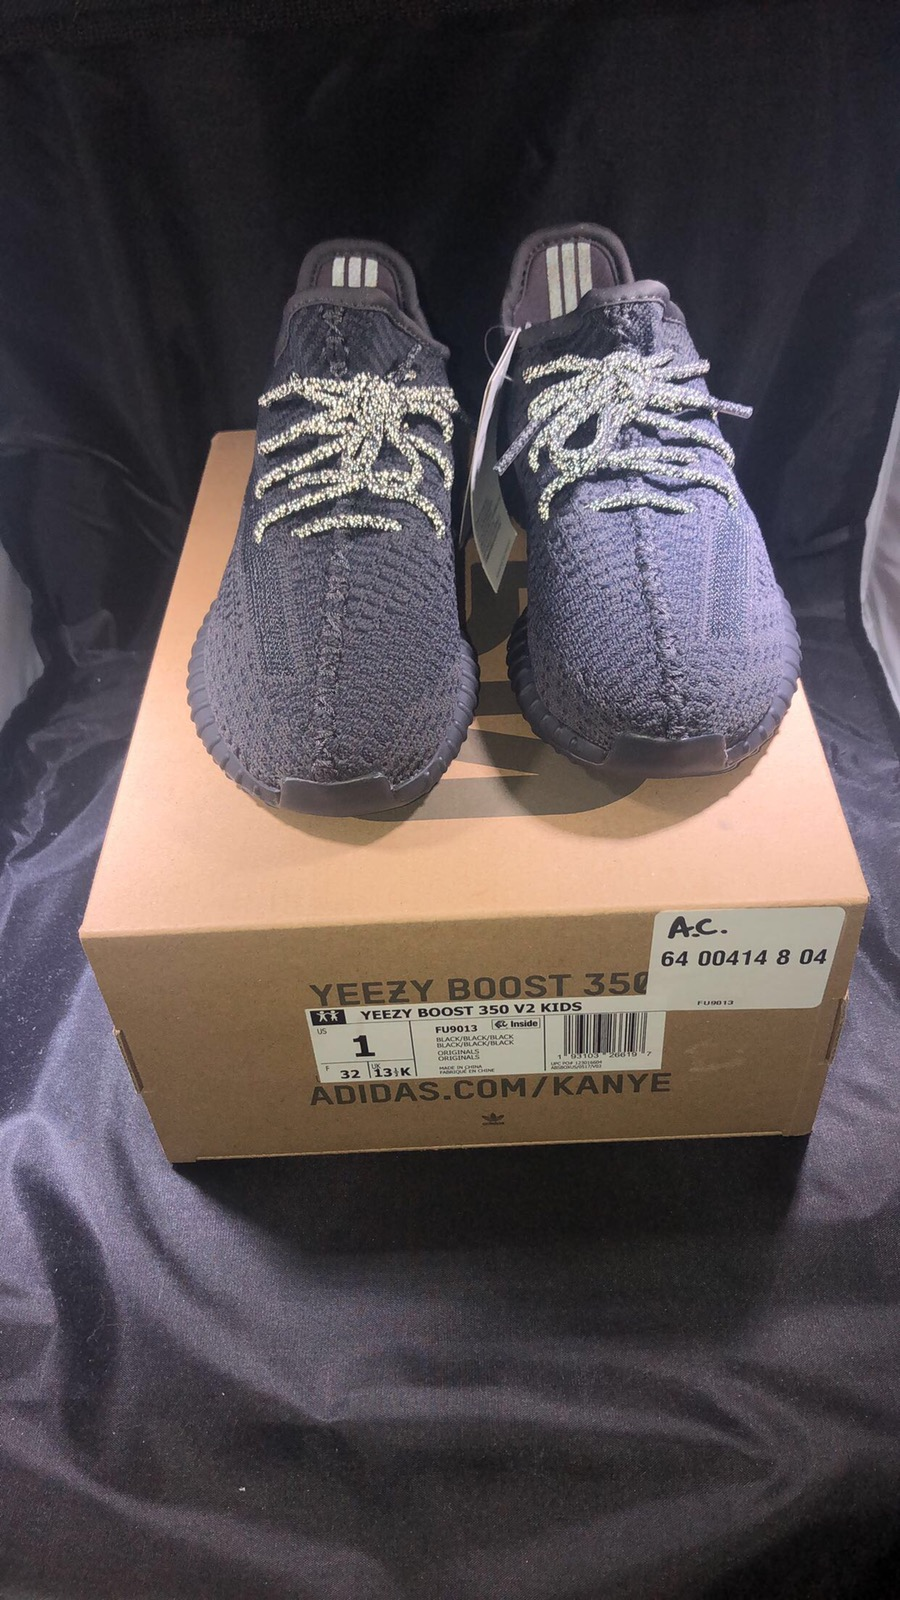 New Infant Adidas Yeezy Boost 350 Pirate Black BB5355 TODDLER DEADSTOCK